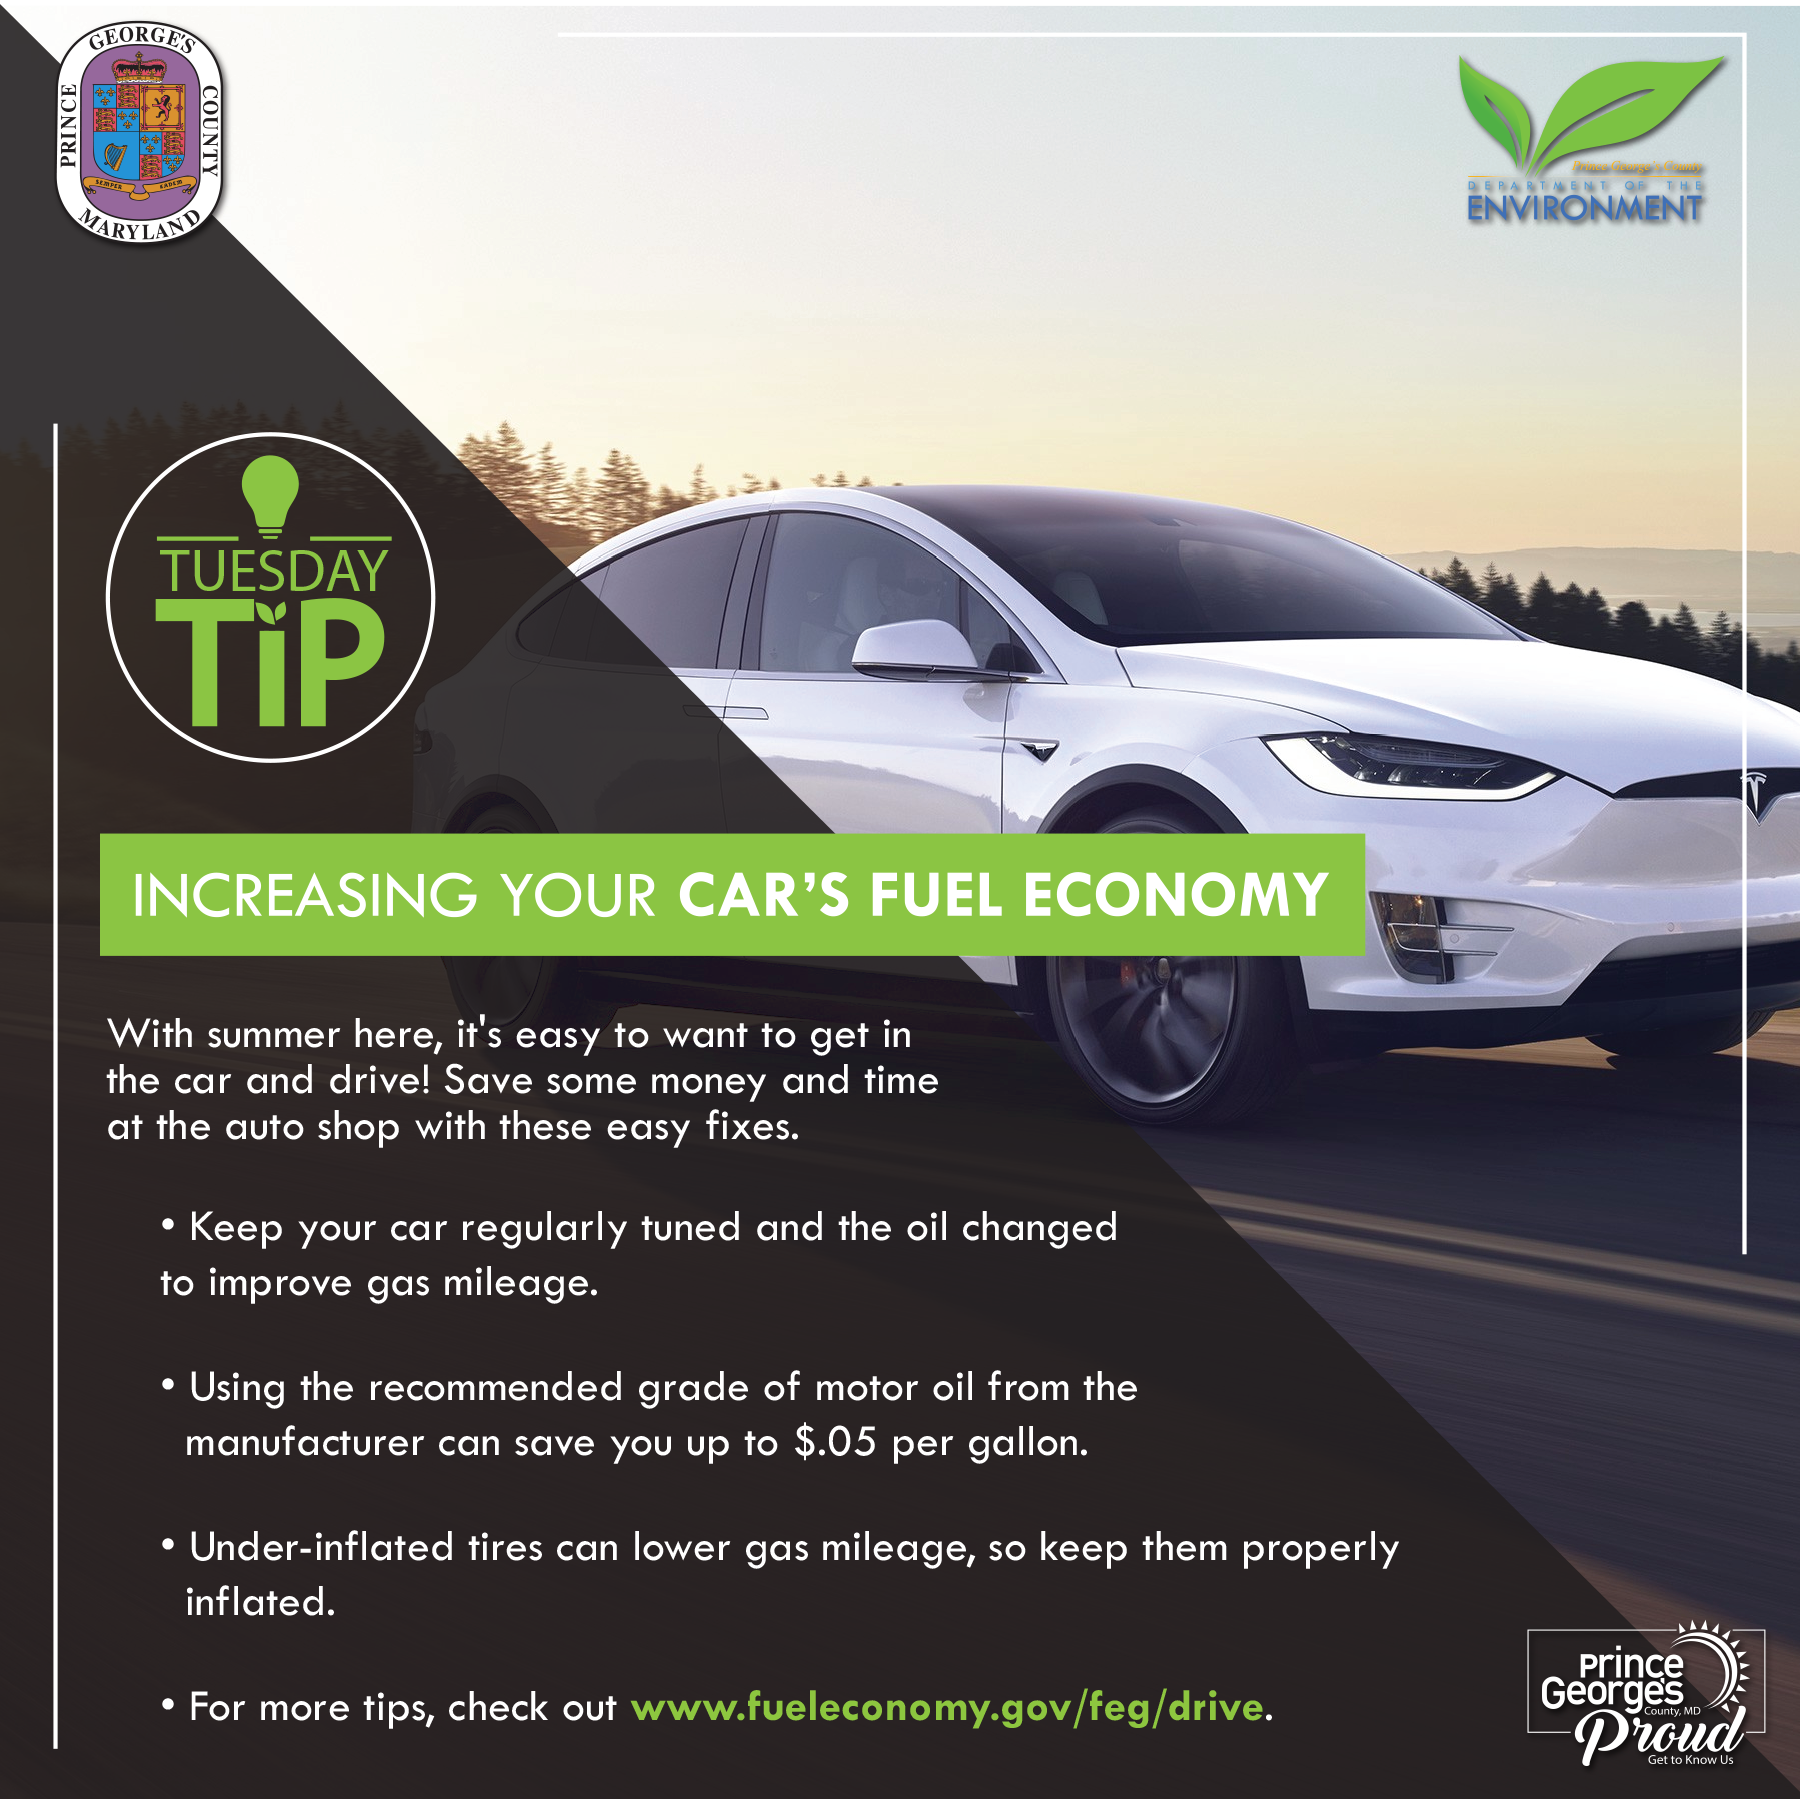 Tues Tip 7.7.20 FuelEconomy eng